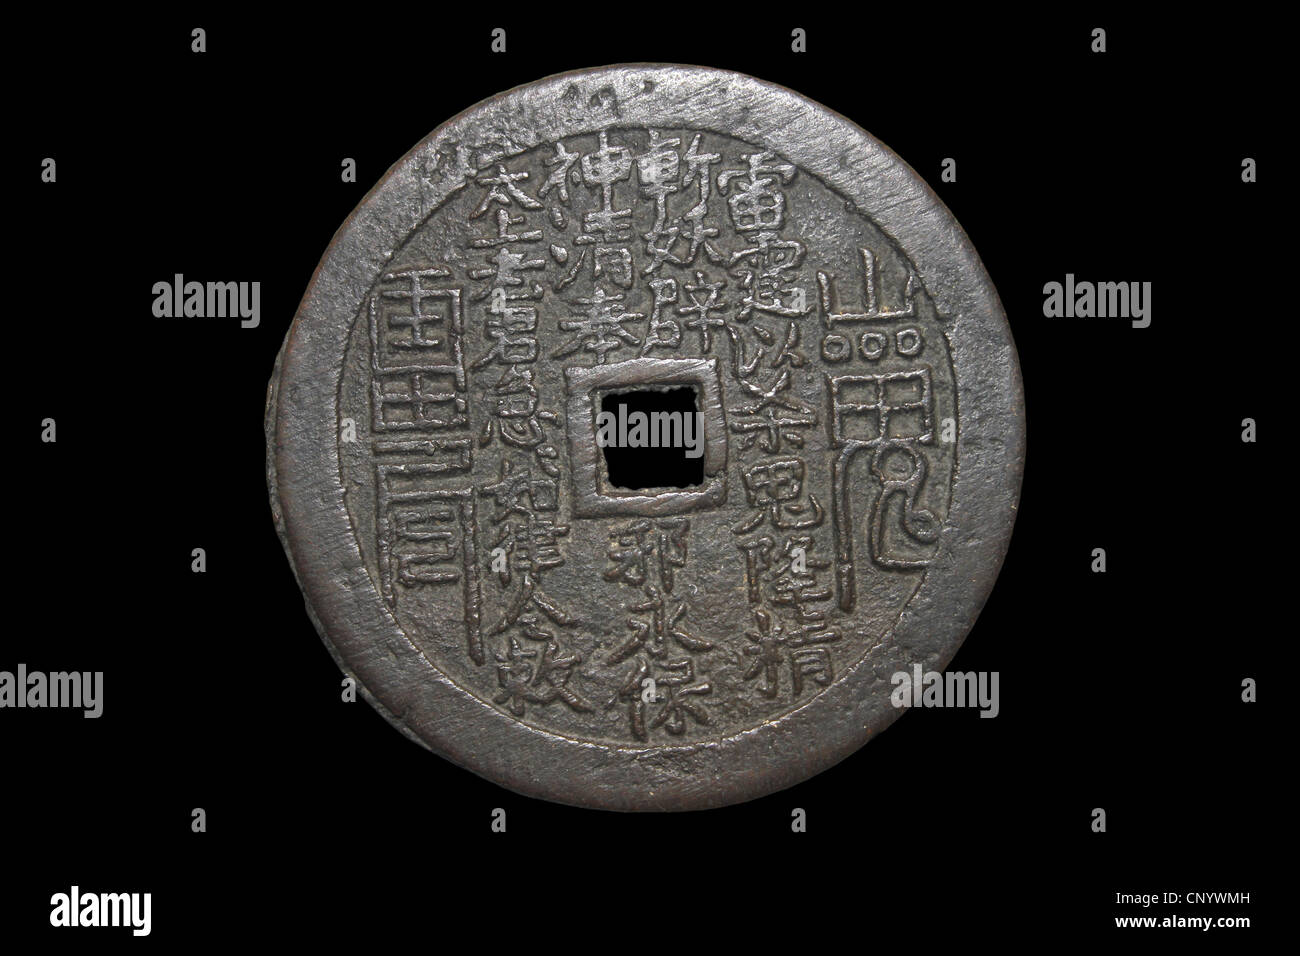 Evil spirits stock photos evil spirits stock images alamy bronze chinese protection amulet with thunder writing effective against evil spirits stock image biocorpaavc Gallery